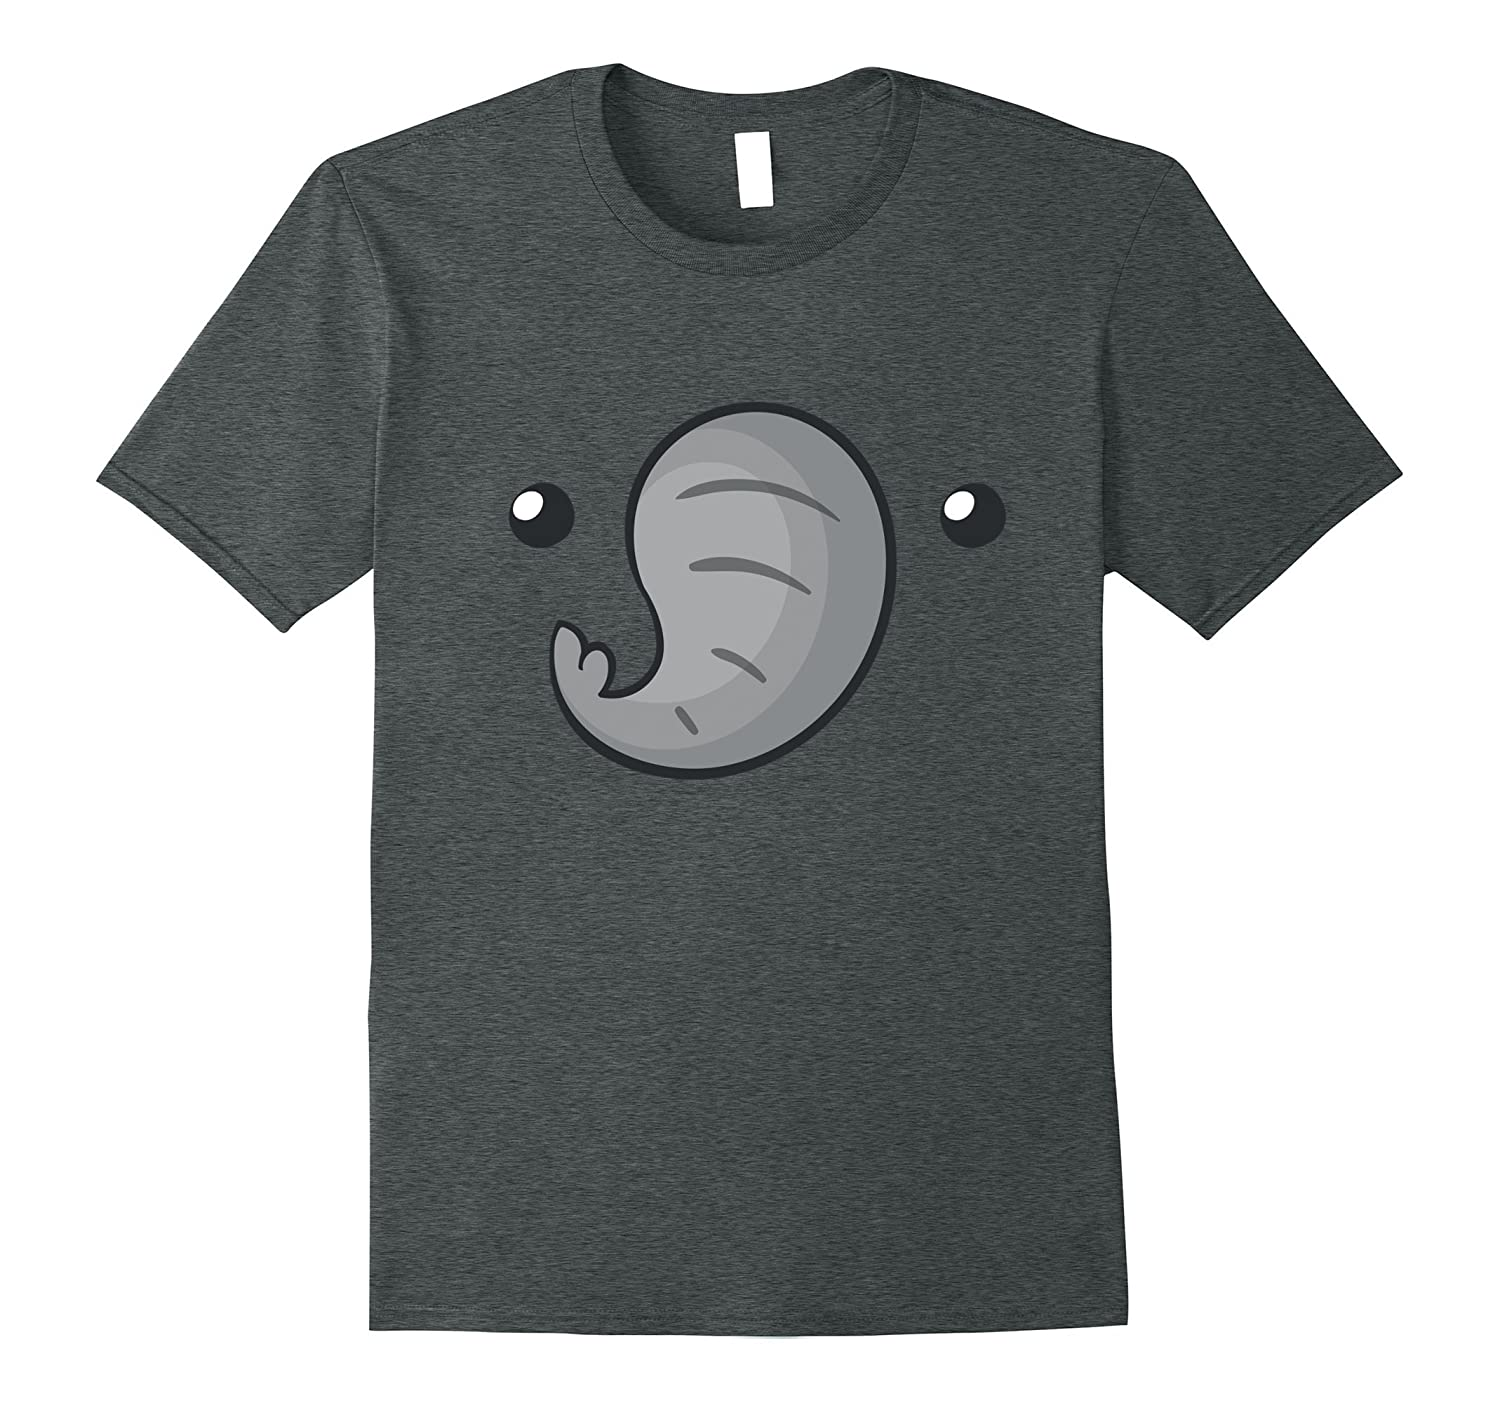 Cute Elephant Face T-Shirt Halloween Costume For Kids Adult-AZP